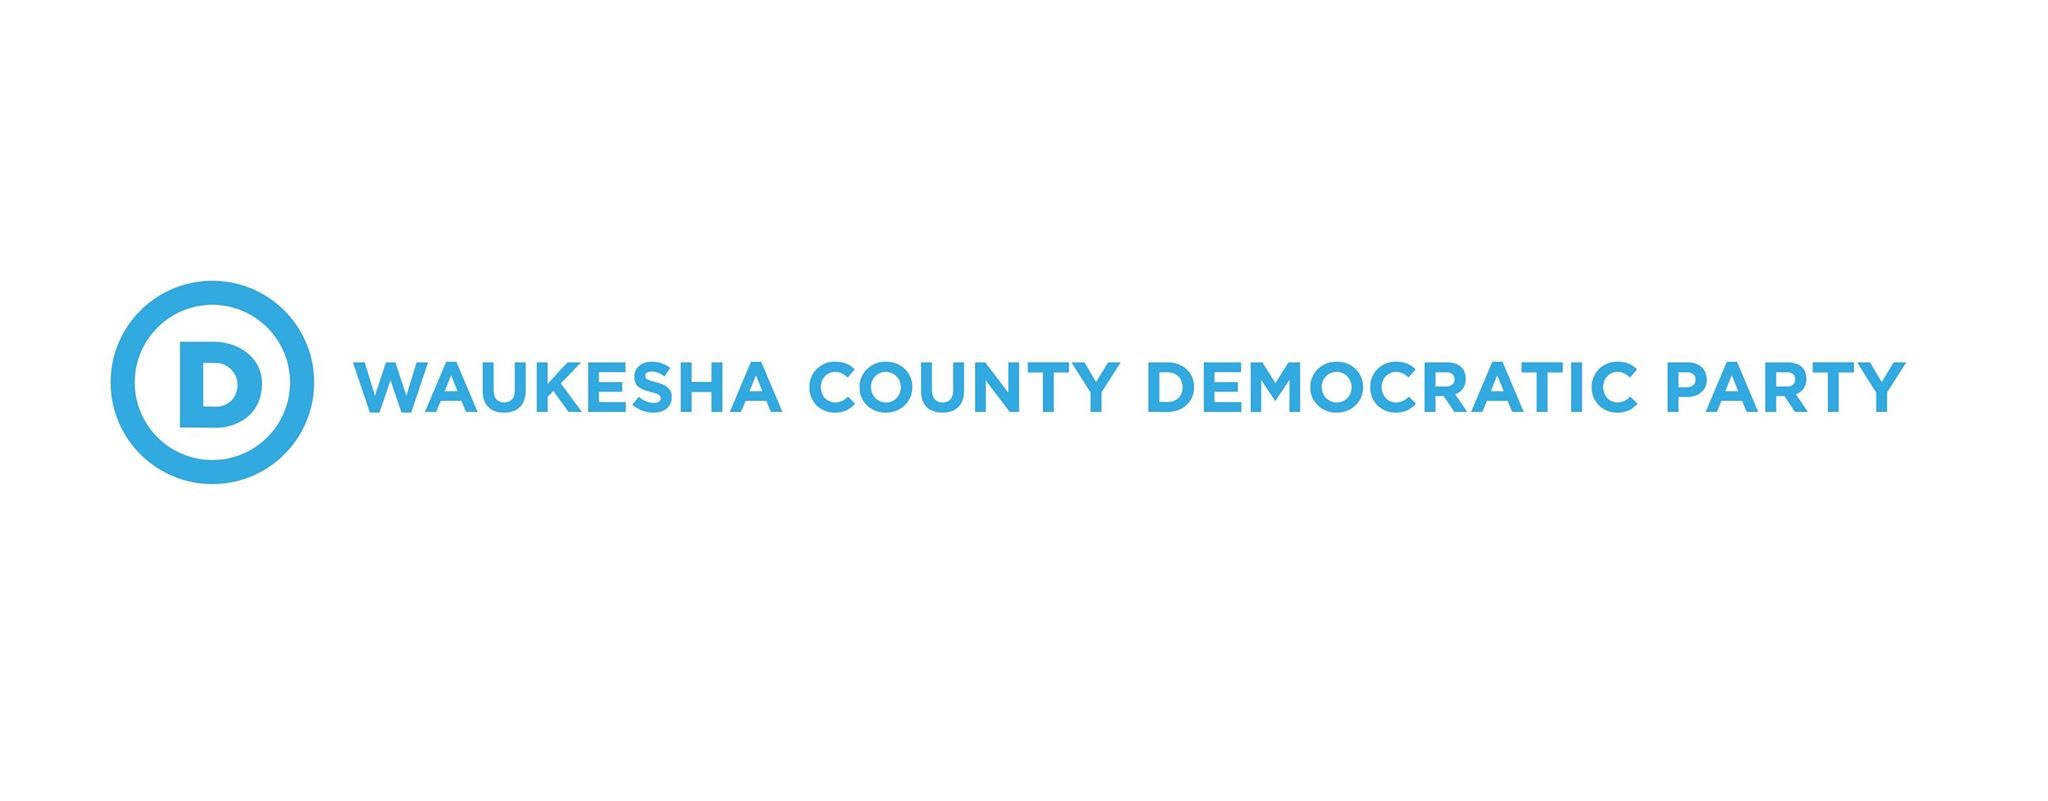 Waukesha County Democratic Party (WI)